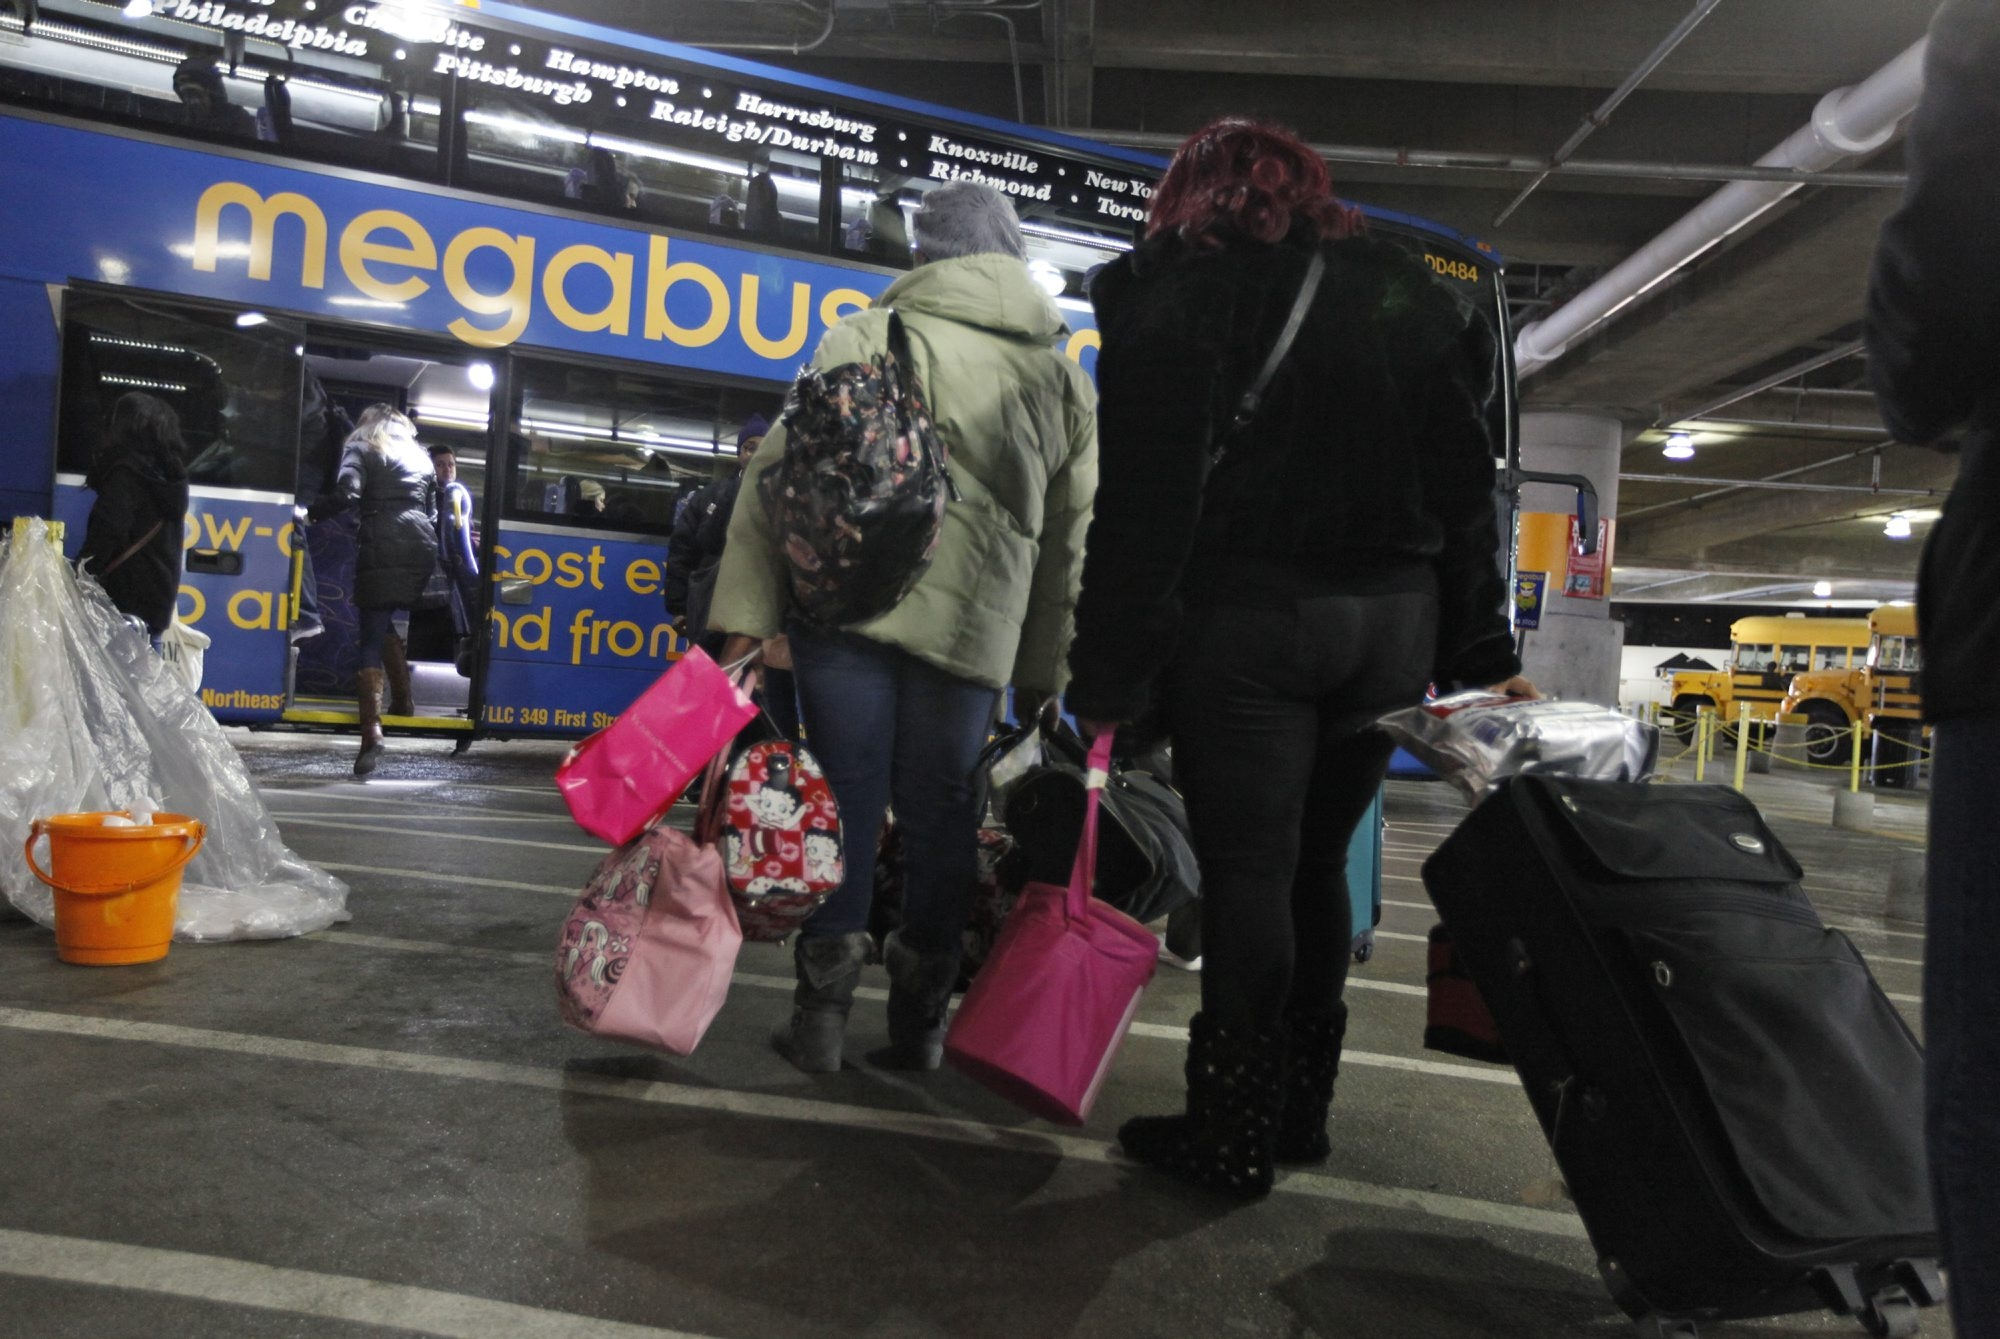 Passengers wait to board a Megabus at a bus terminal in Washington, D.C., on Jan. 4, 2013. Megabus is expanding its reserved seating program from 10 seats per bus to 20 seats.